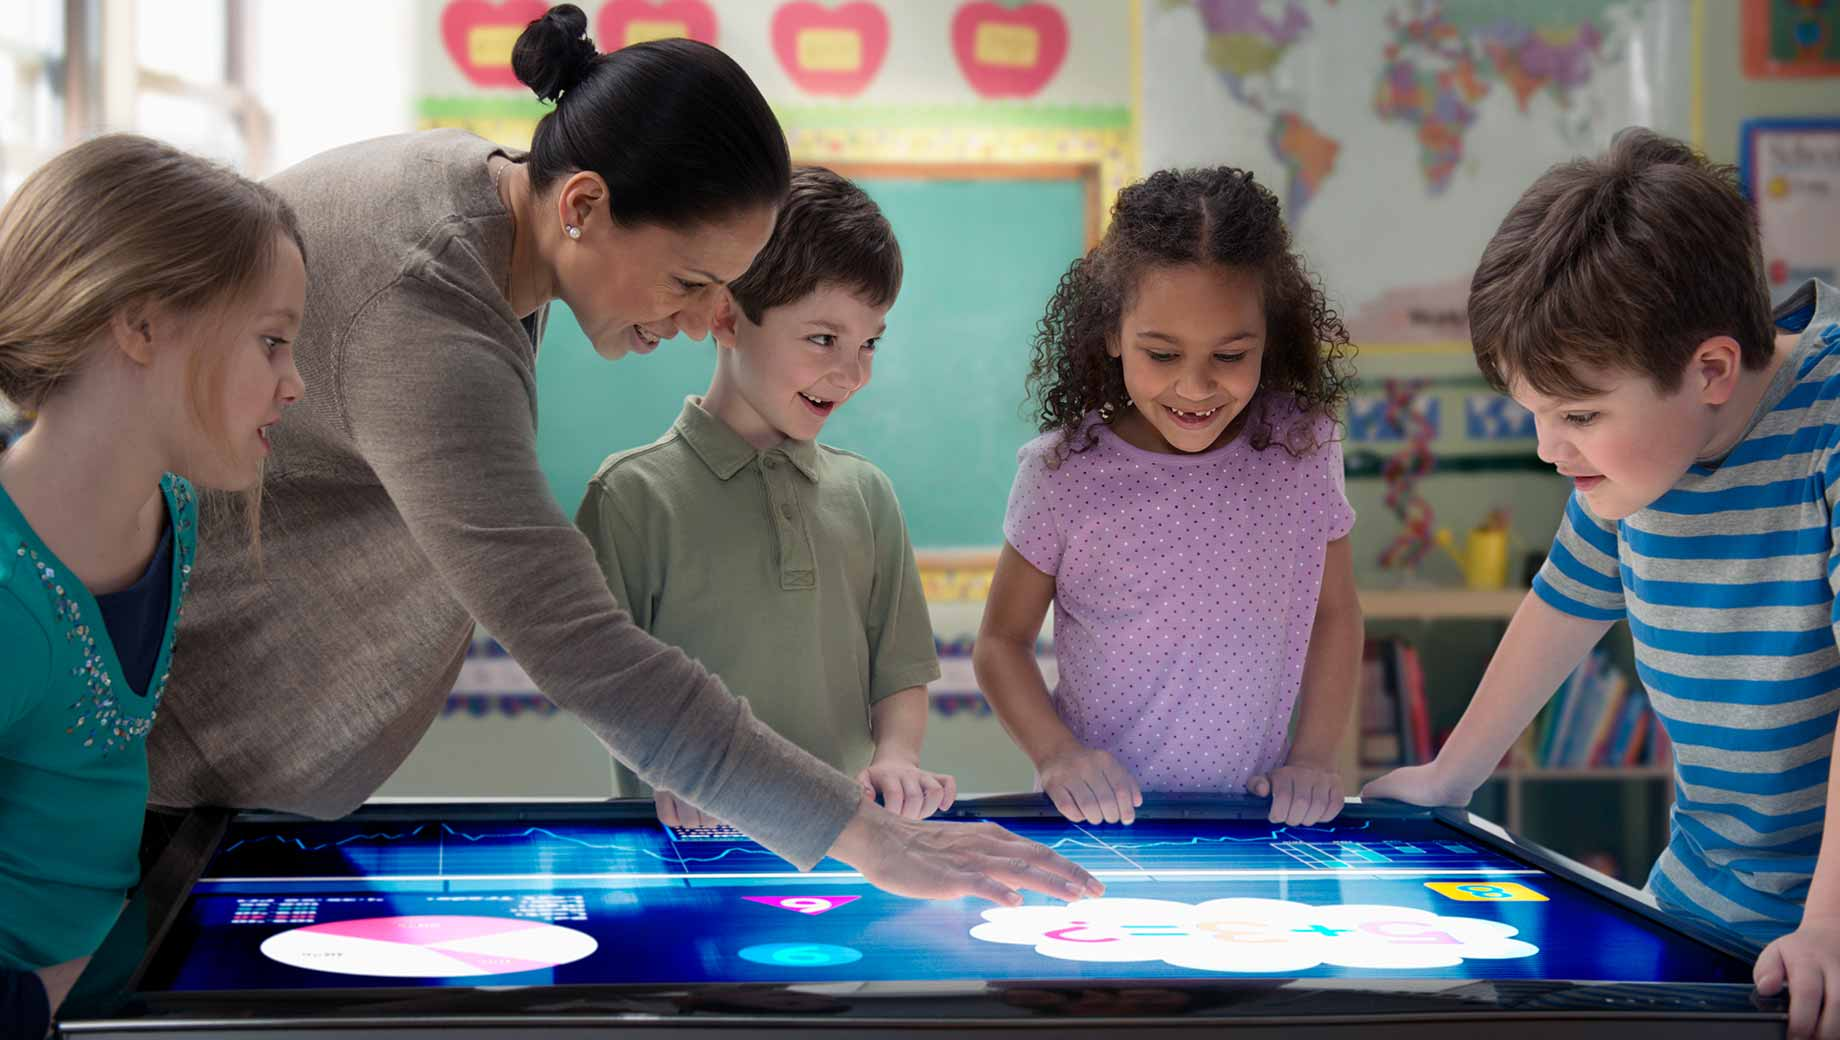 Educators Agree on the Value of Ed Tech